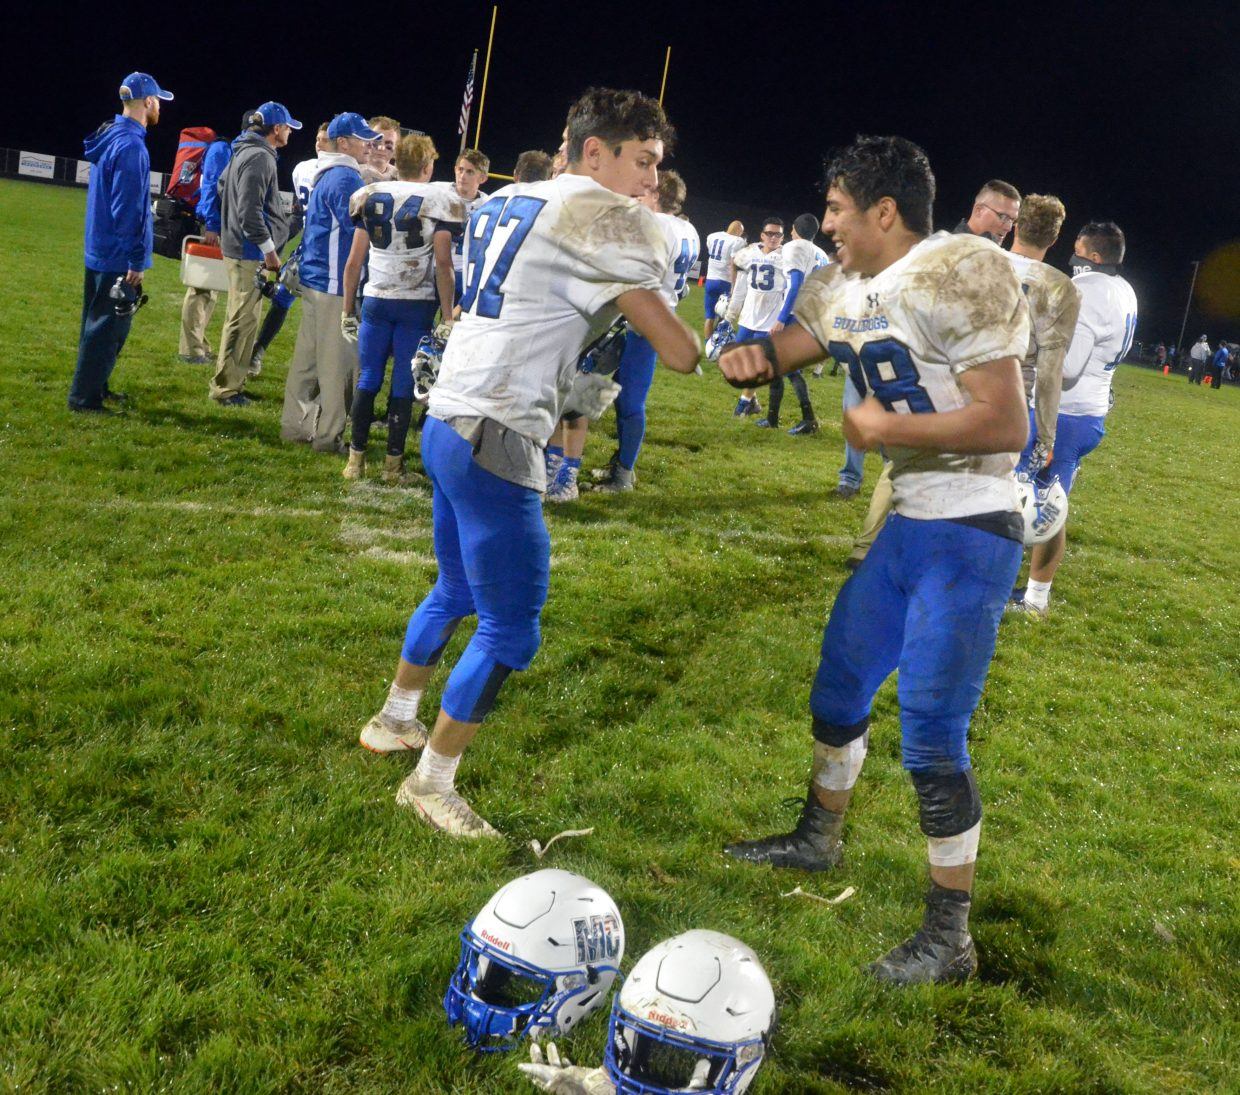 Moffat County High School football players Dario Alexander, left, and Kevin Hernandez share a specialty handshake after a win over Coal Ridge.